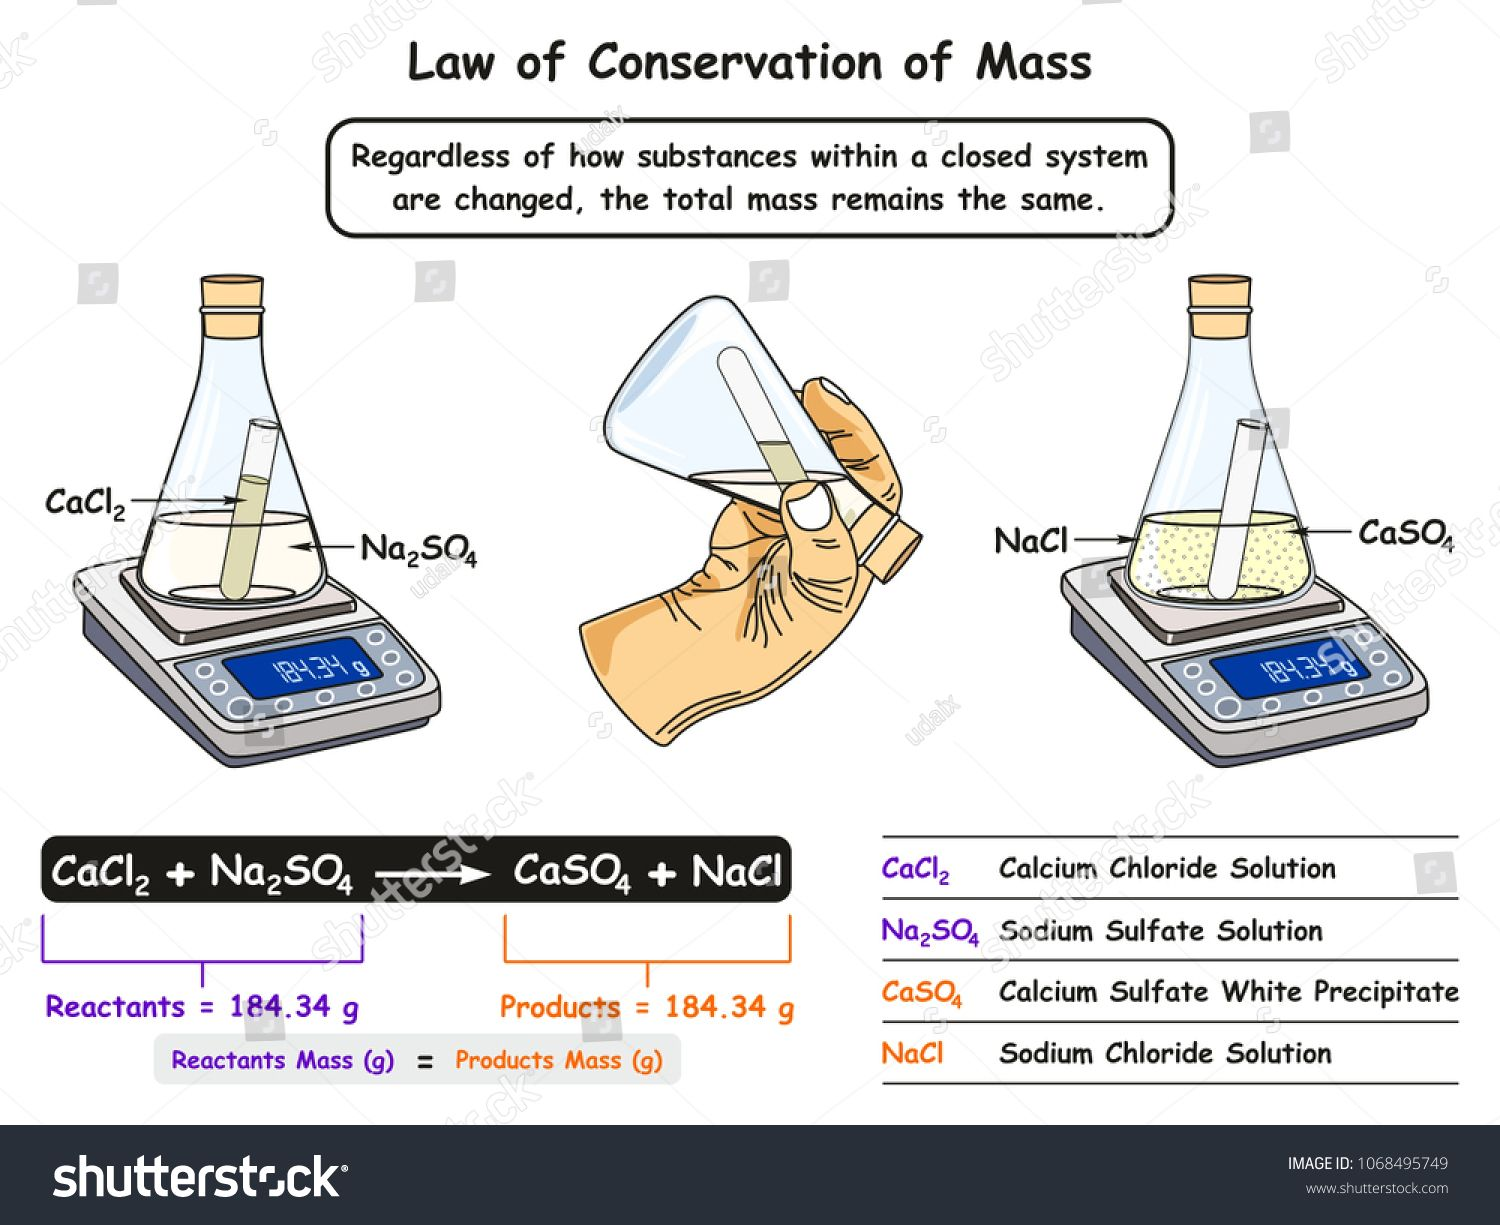 Law Of Conservation Of Mass Worksheet Answers Define The